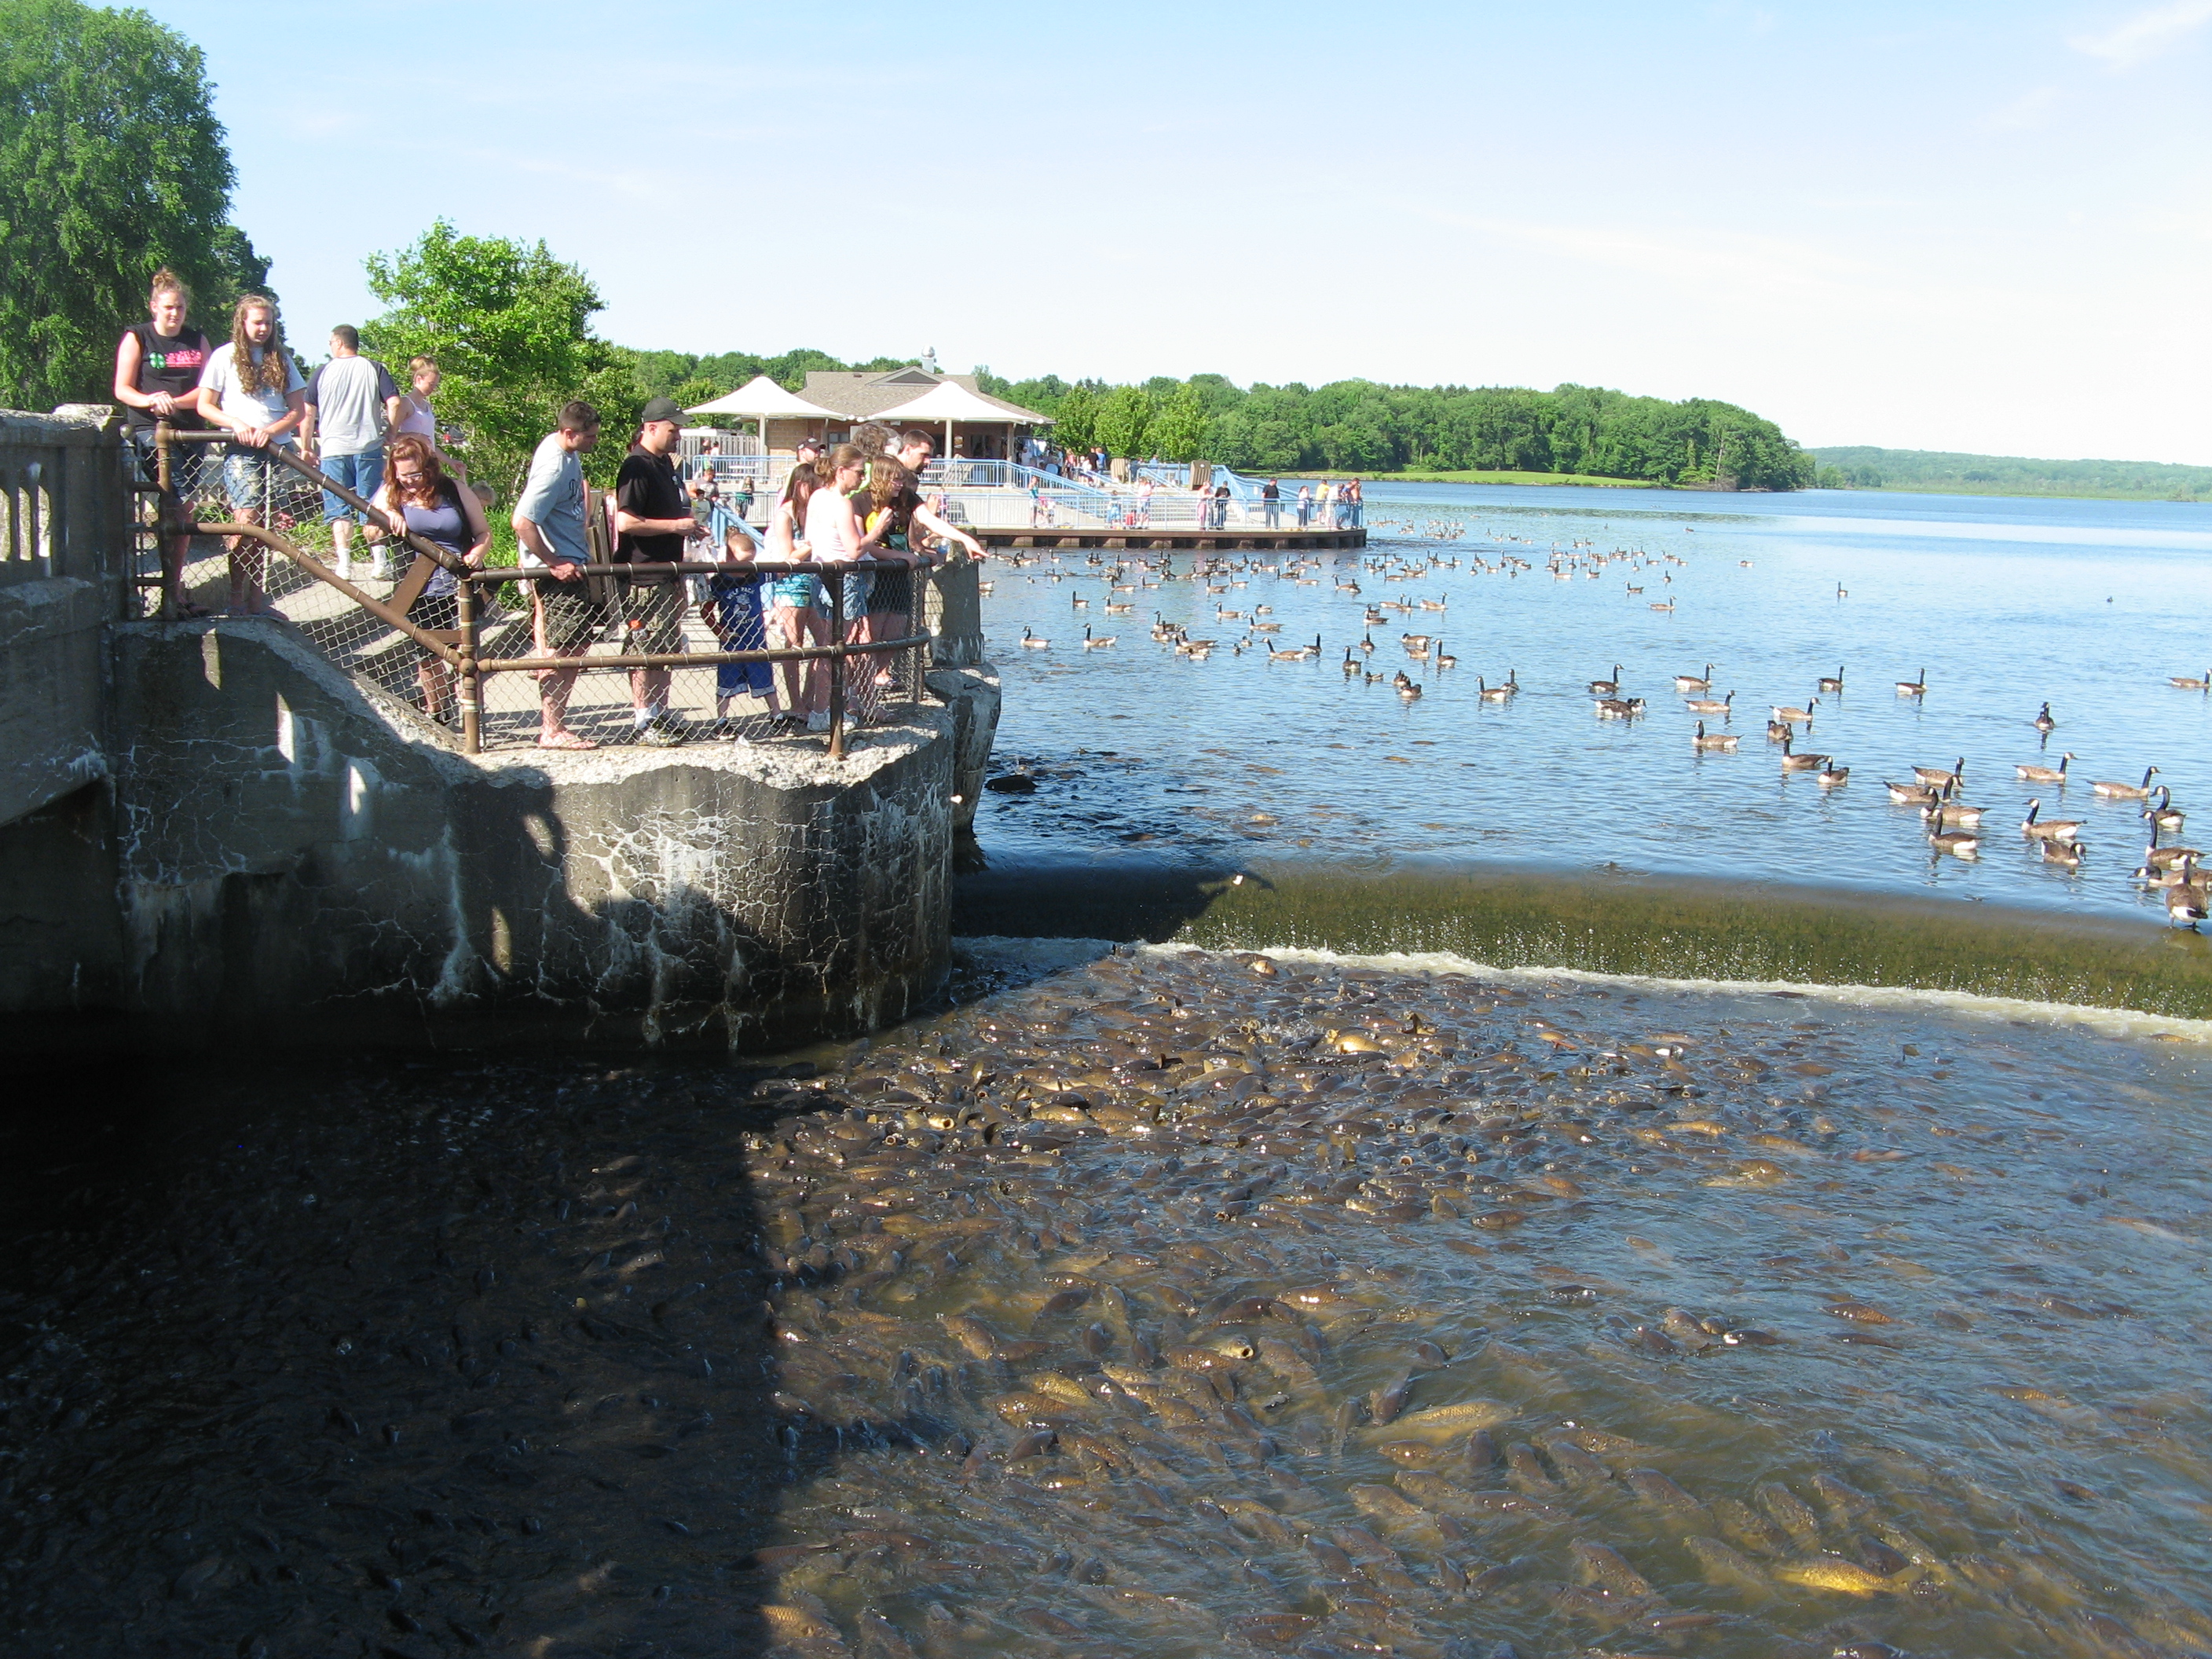 The Linesville Spillway basin packed to the rim with carp, ducks, and geese.